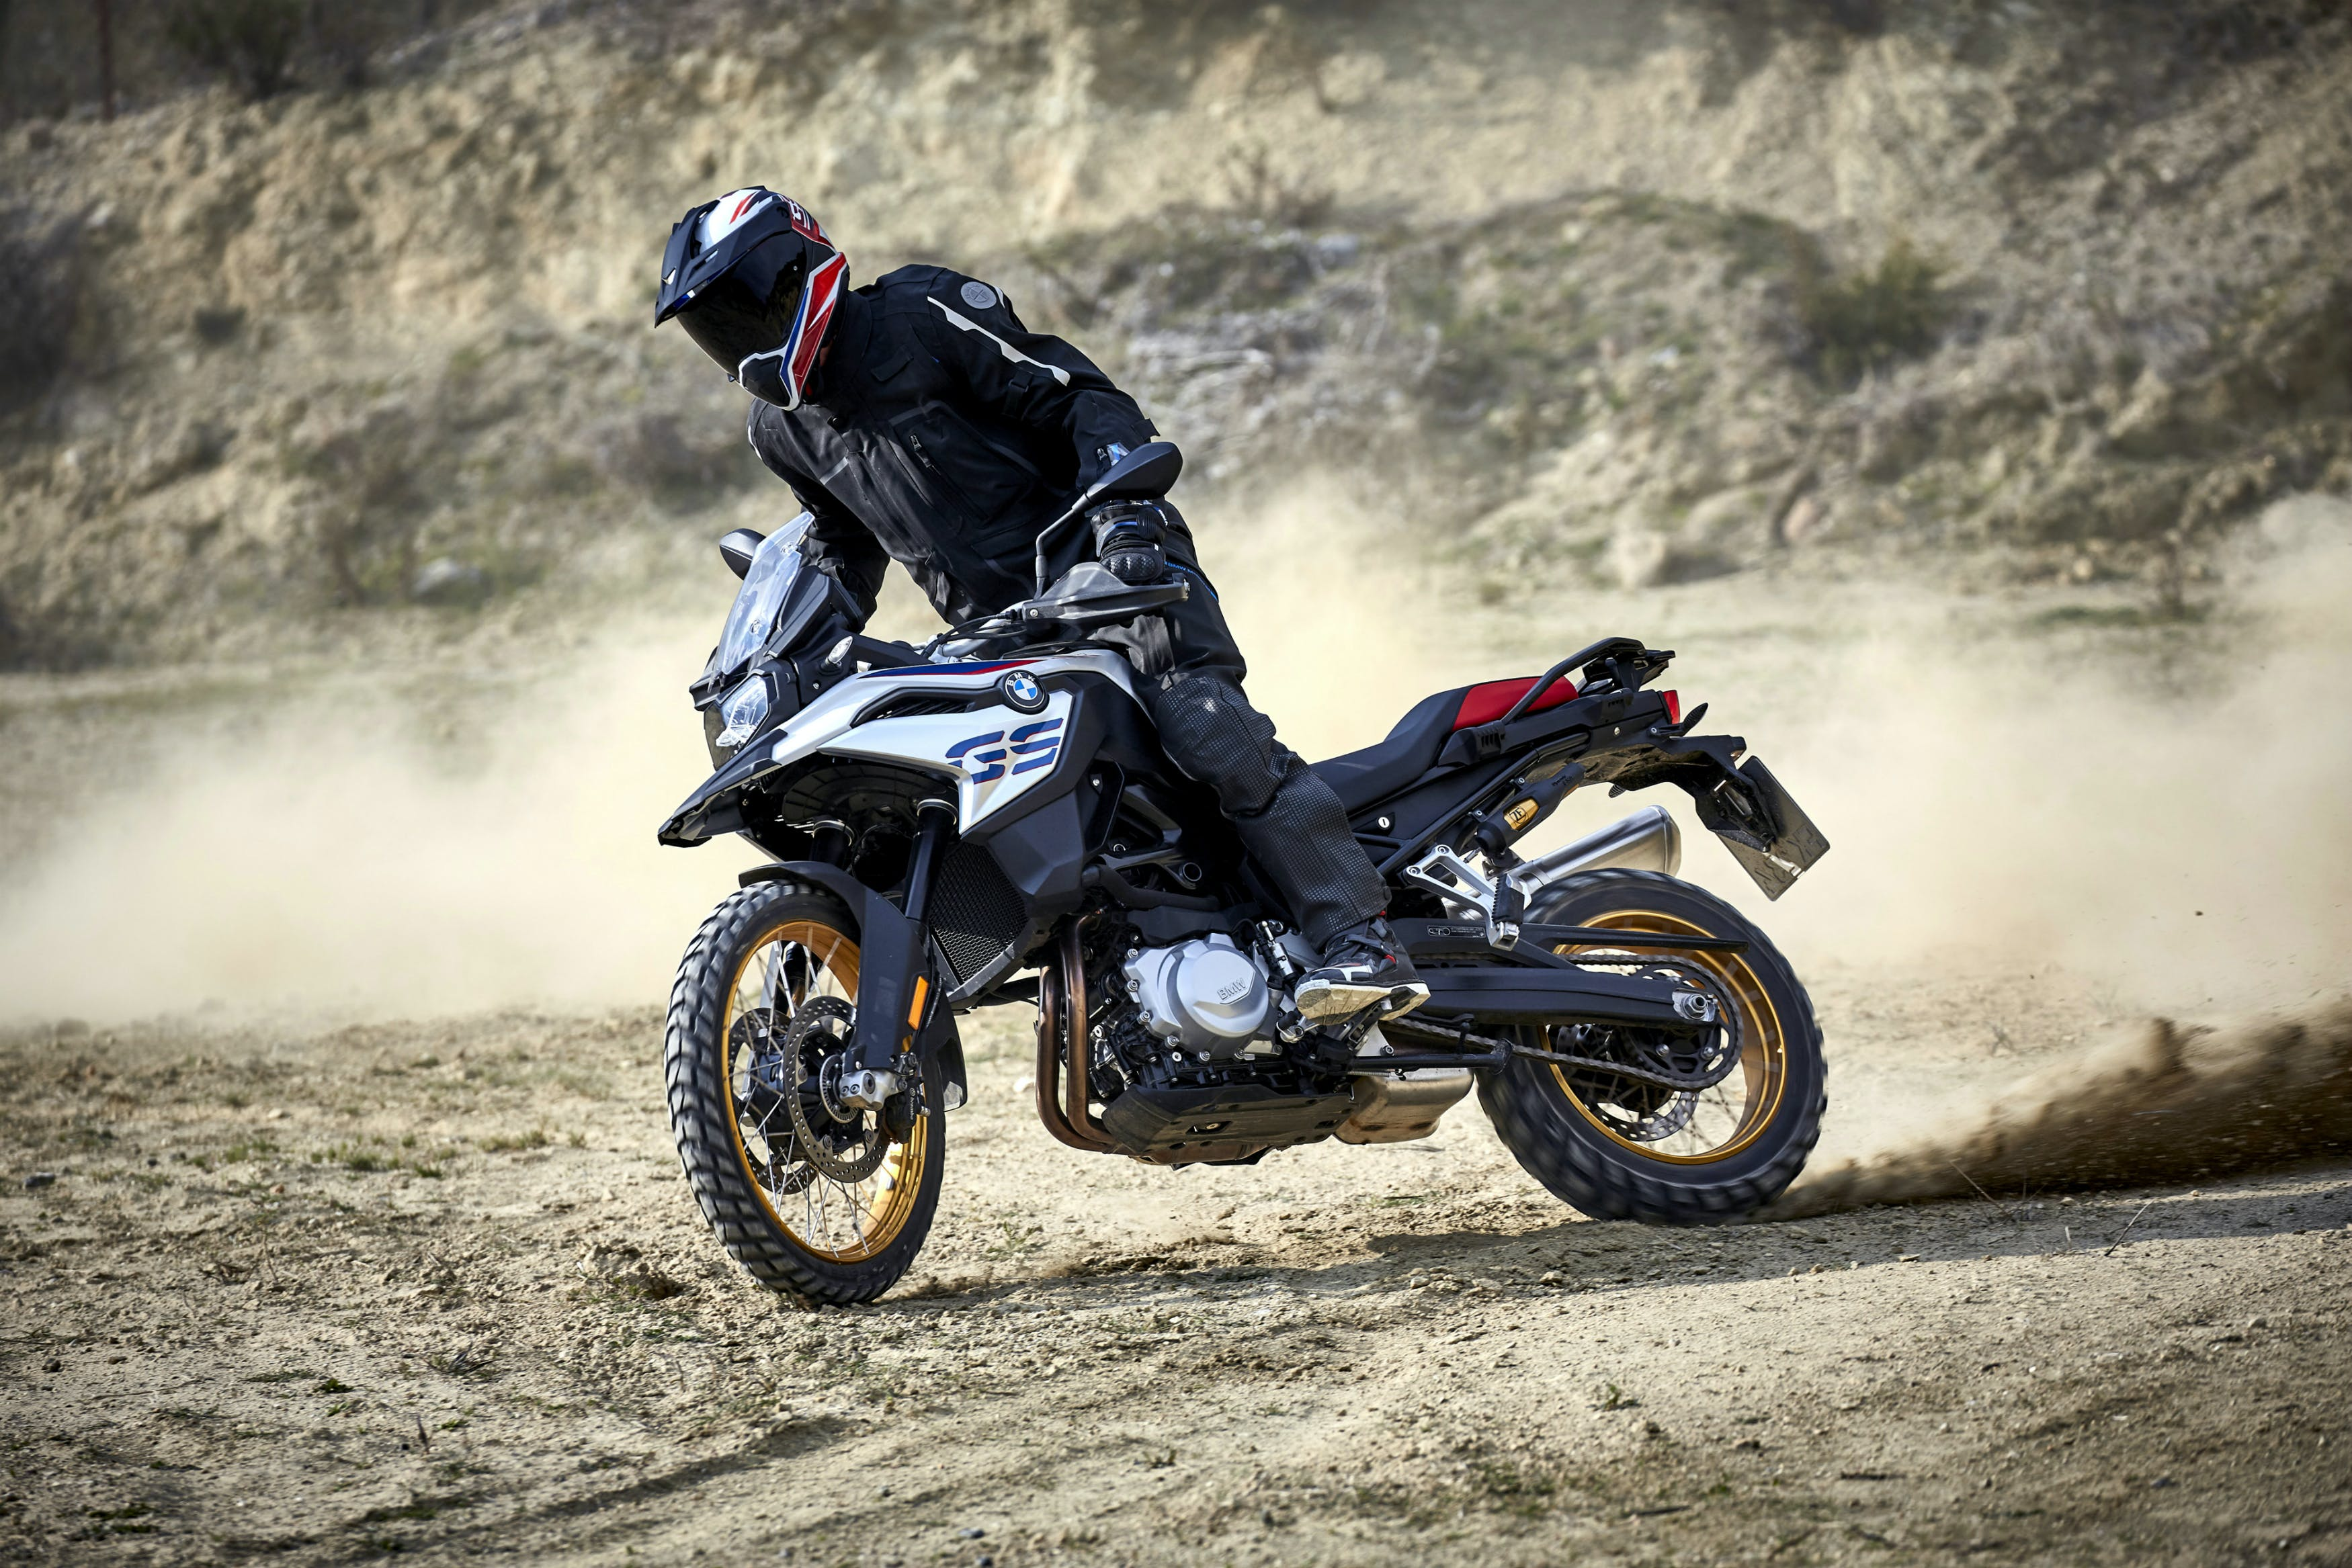 BMW F 850 GS Rallye motorcycle being ridden off-track